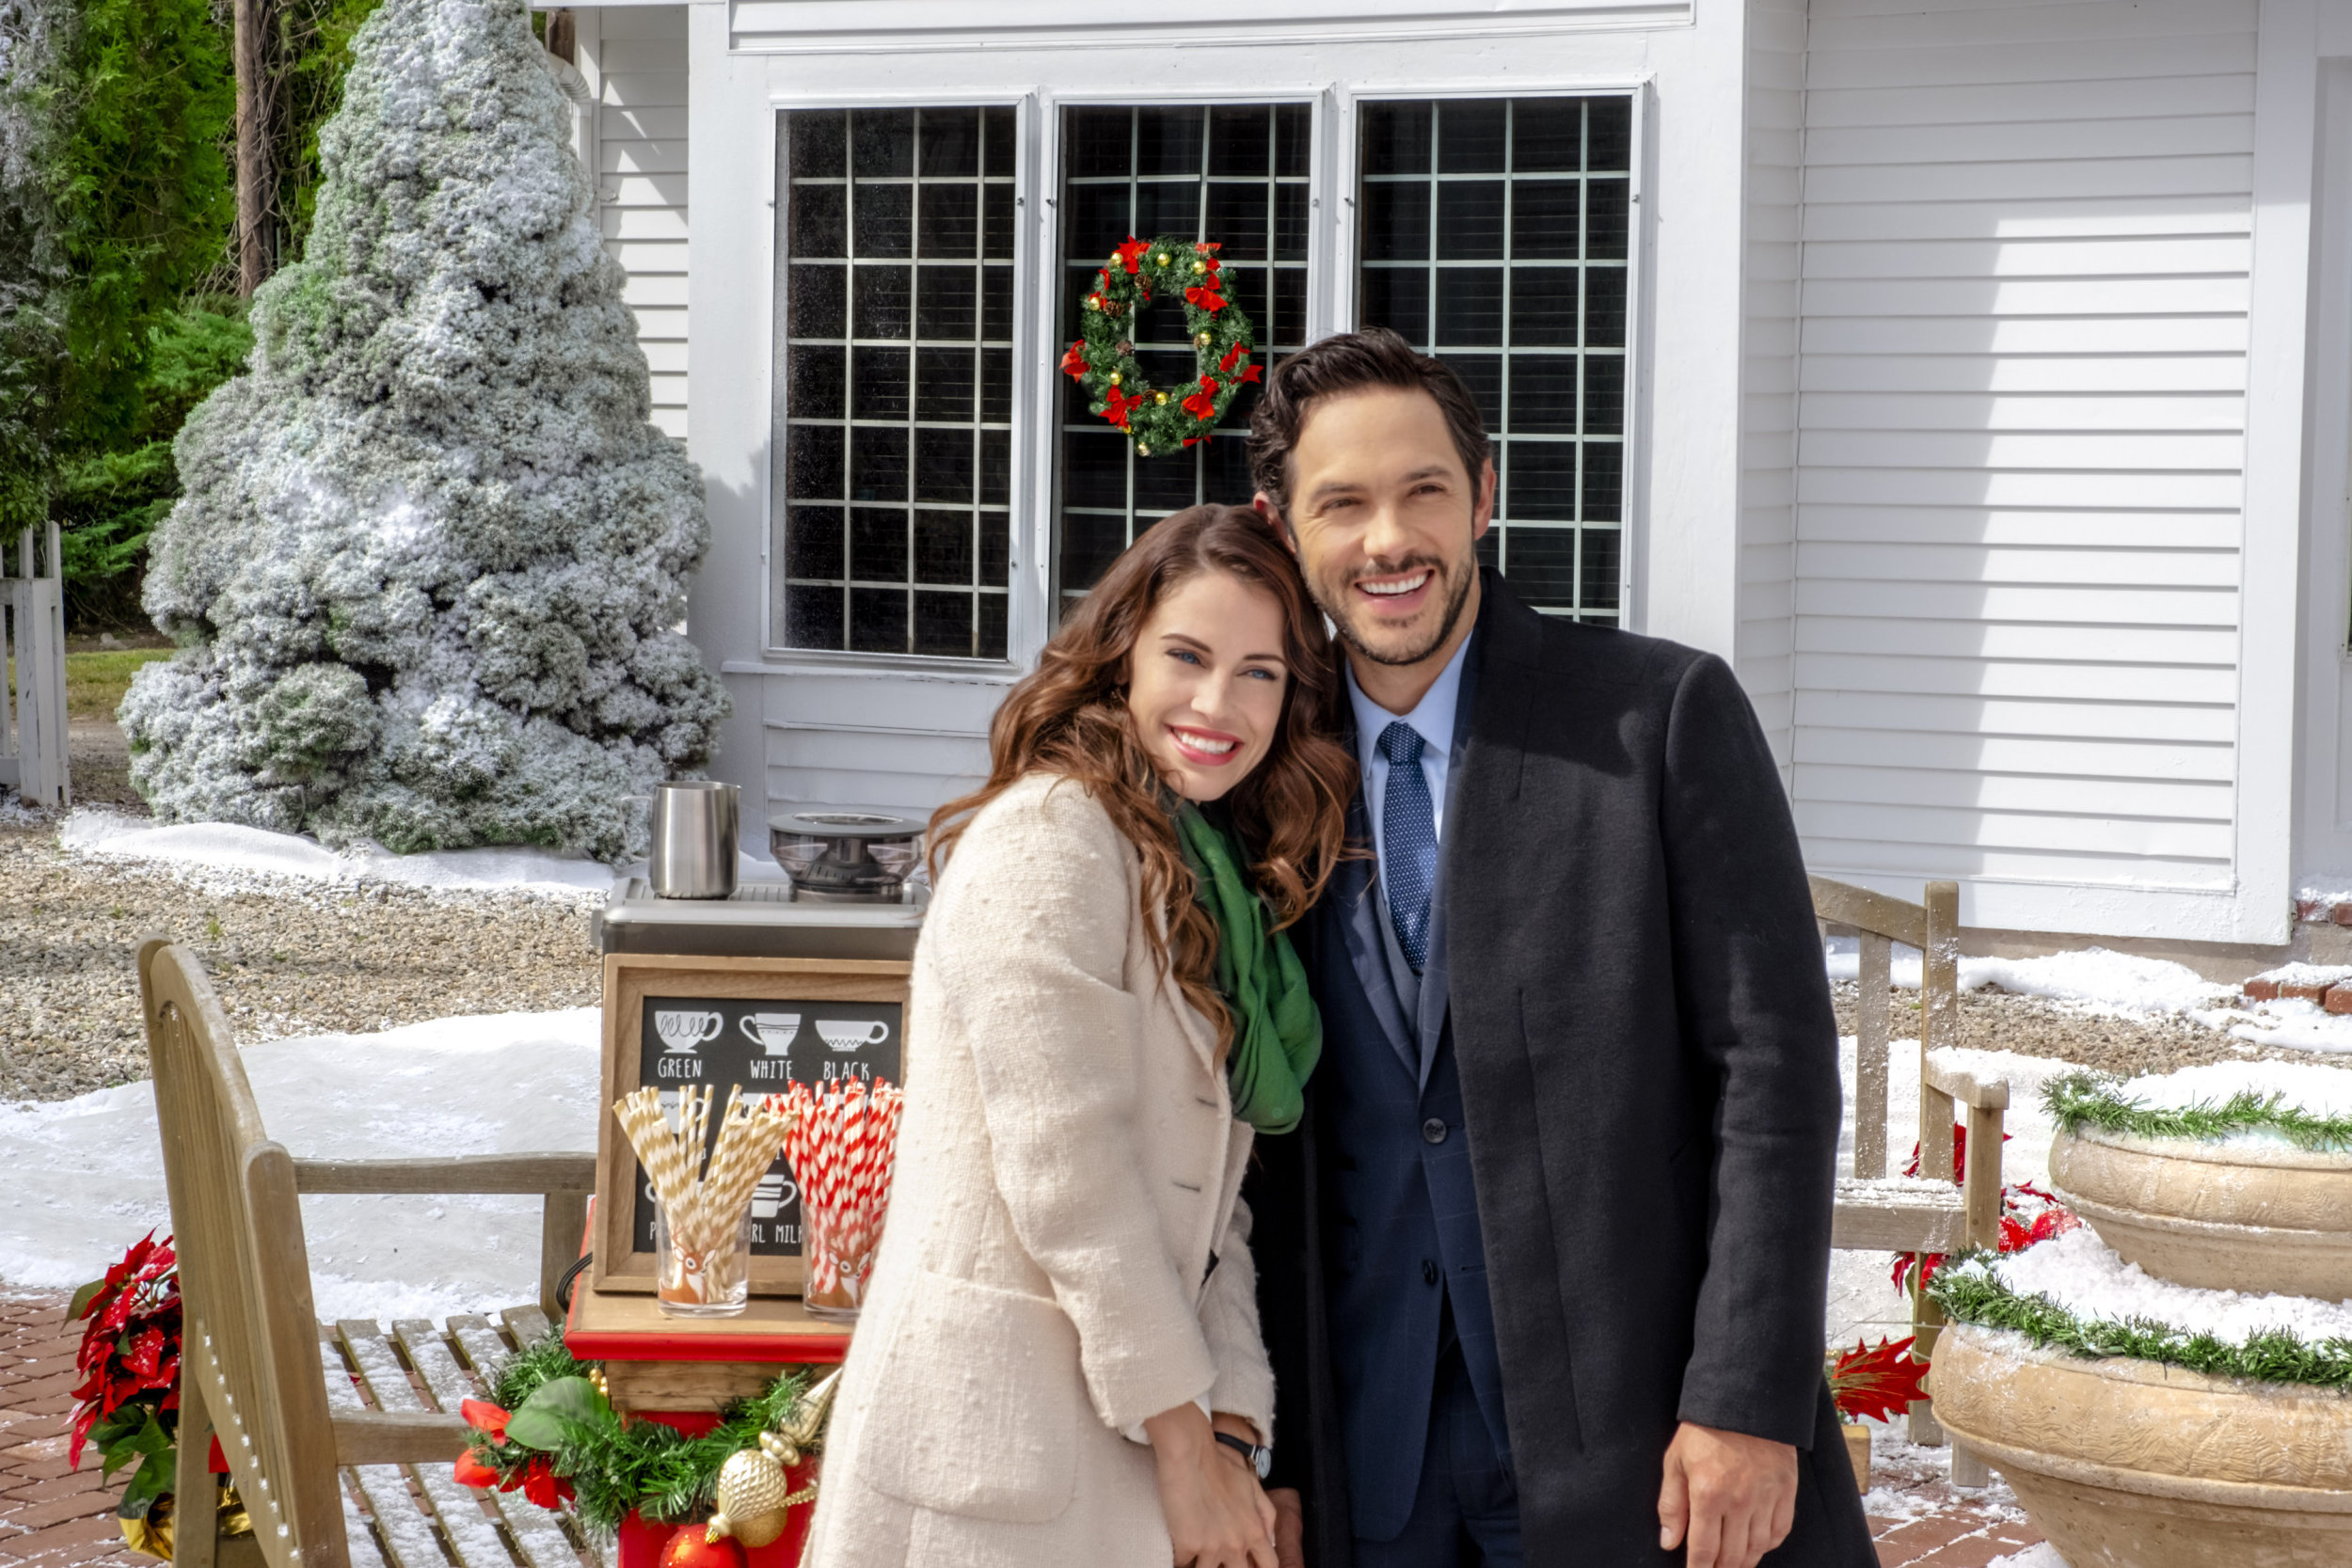 Christmas At Pemberley.Preview Christmas At Pemberley Manor Hallmark Channel